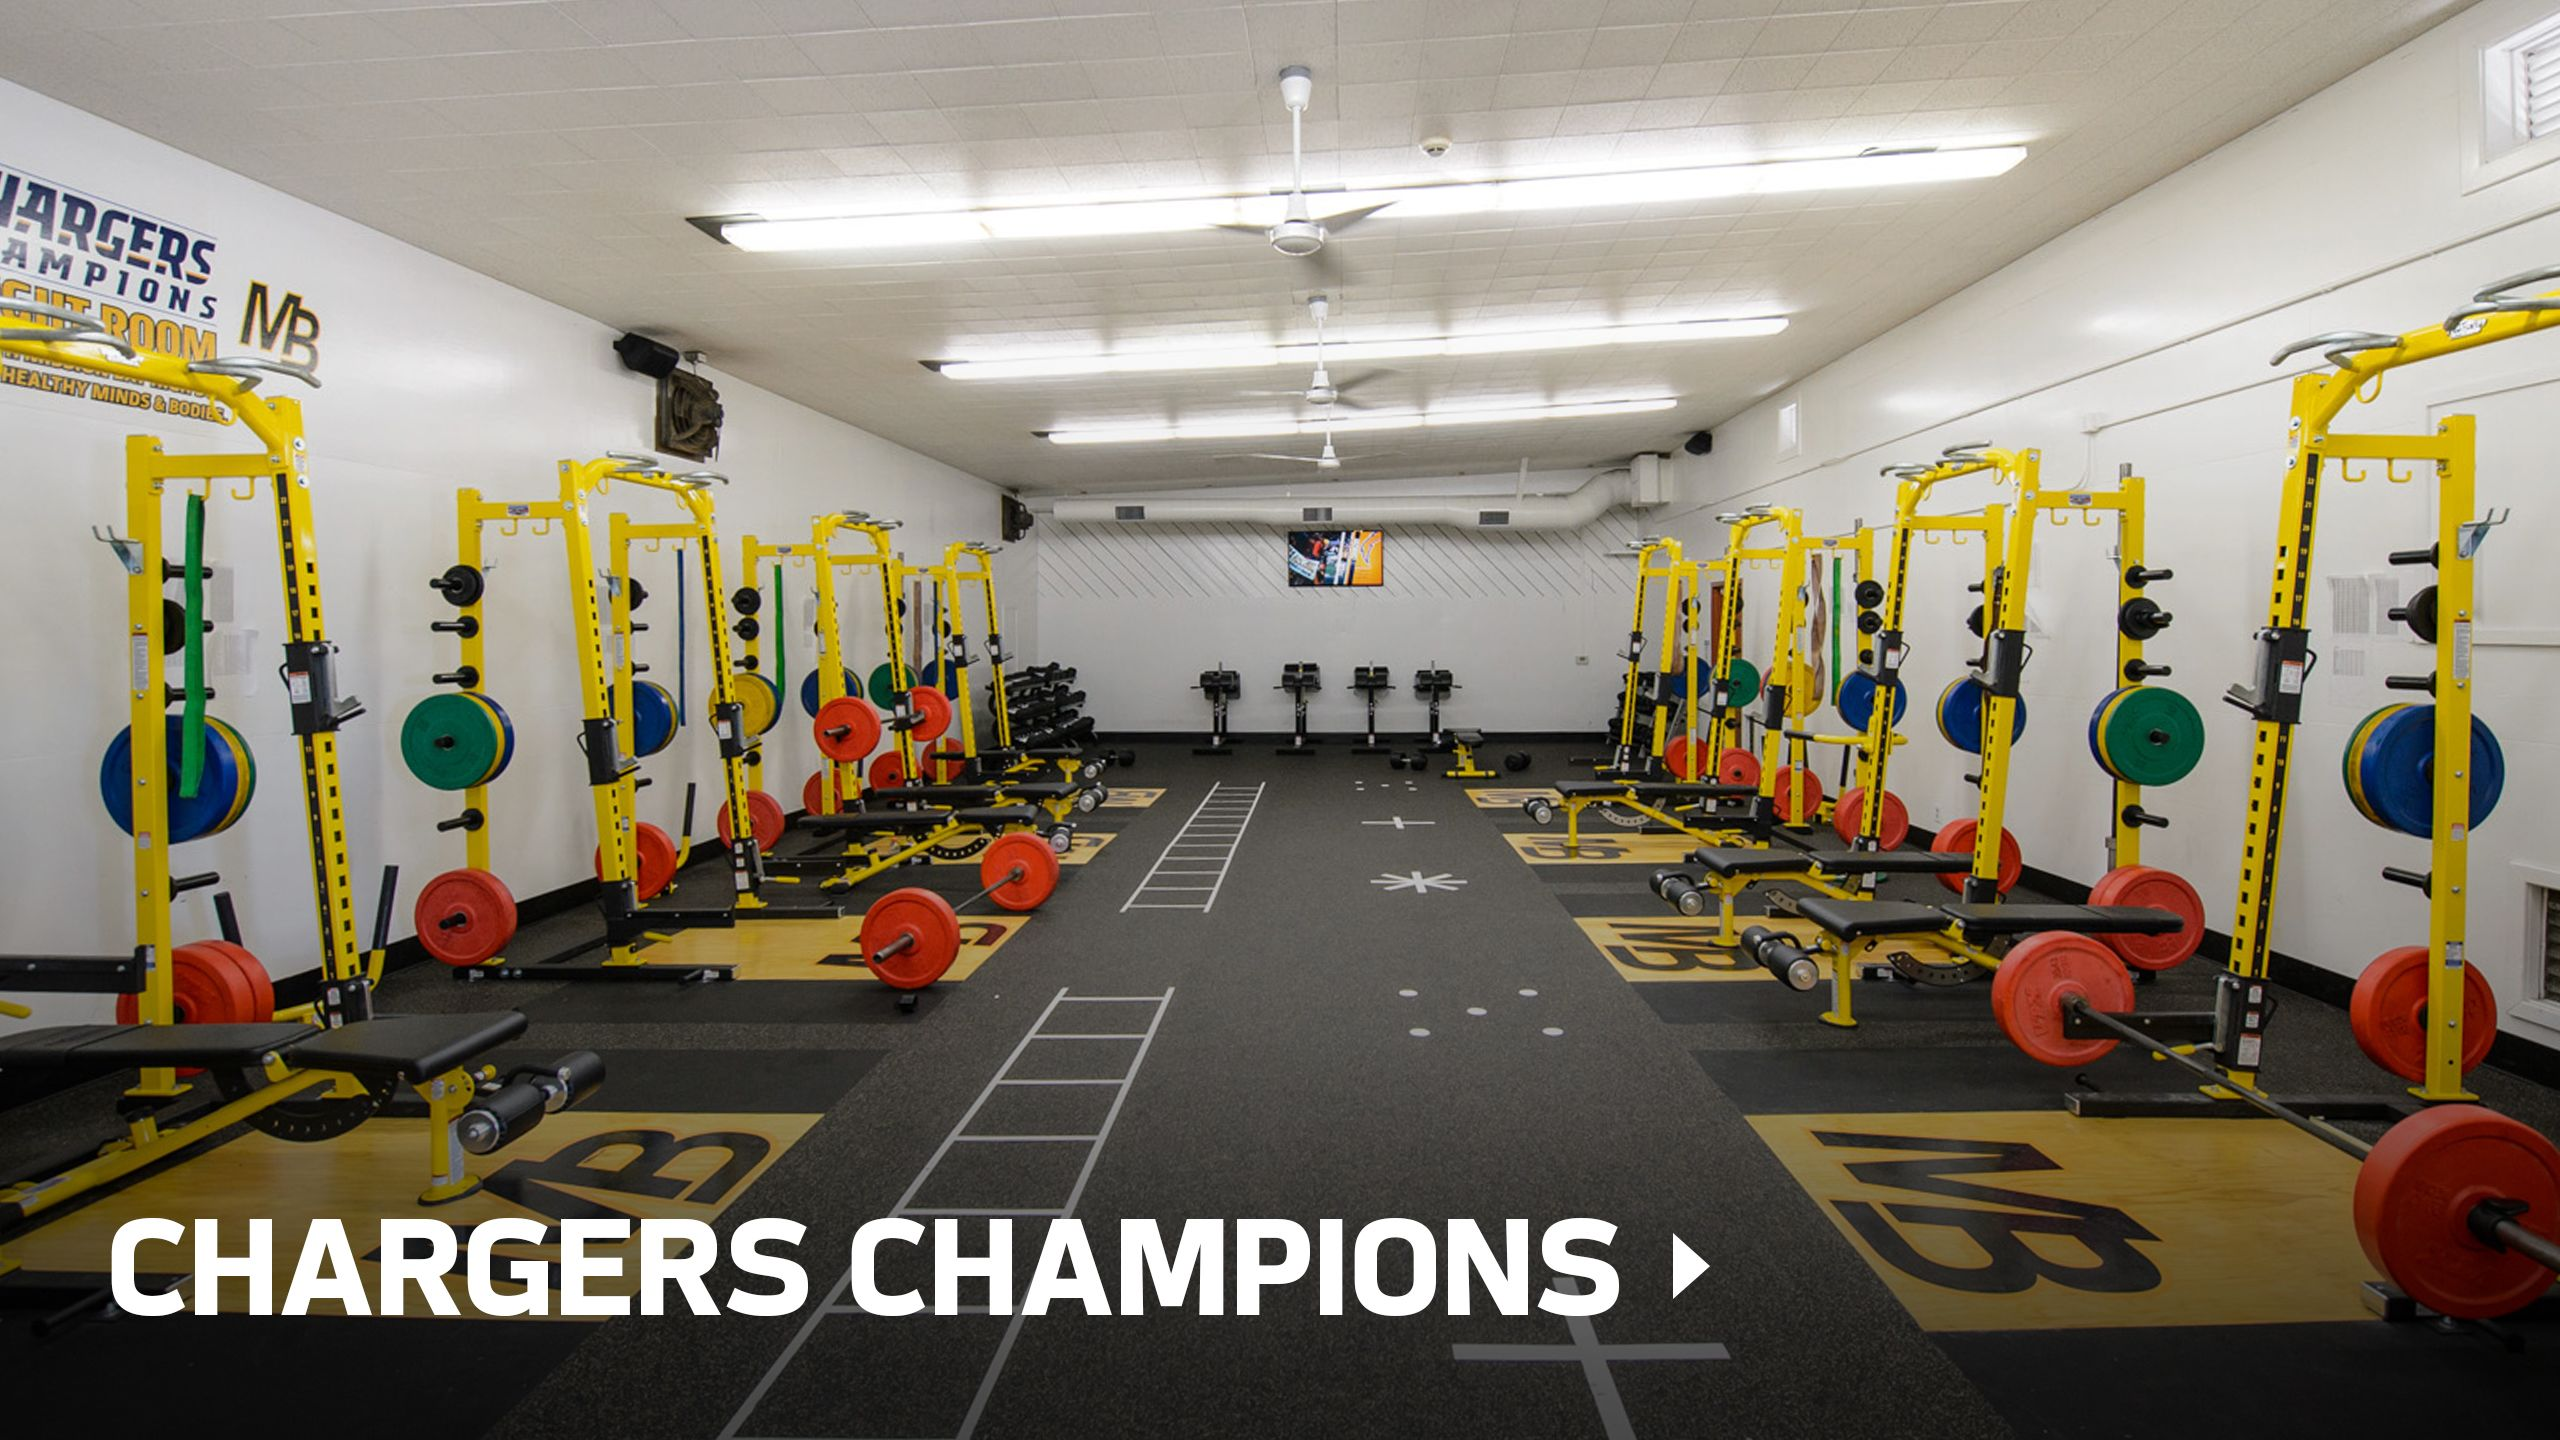 Chargers Champions